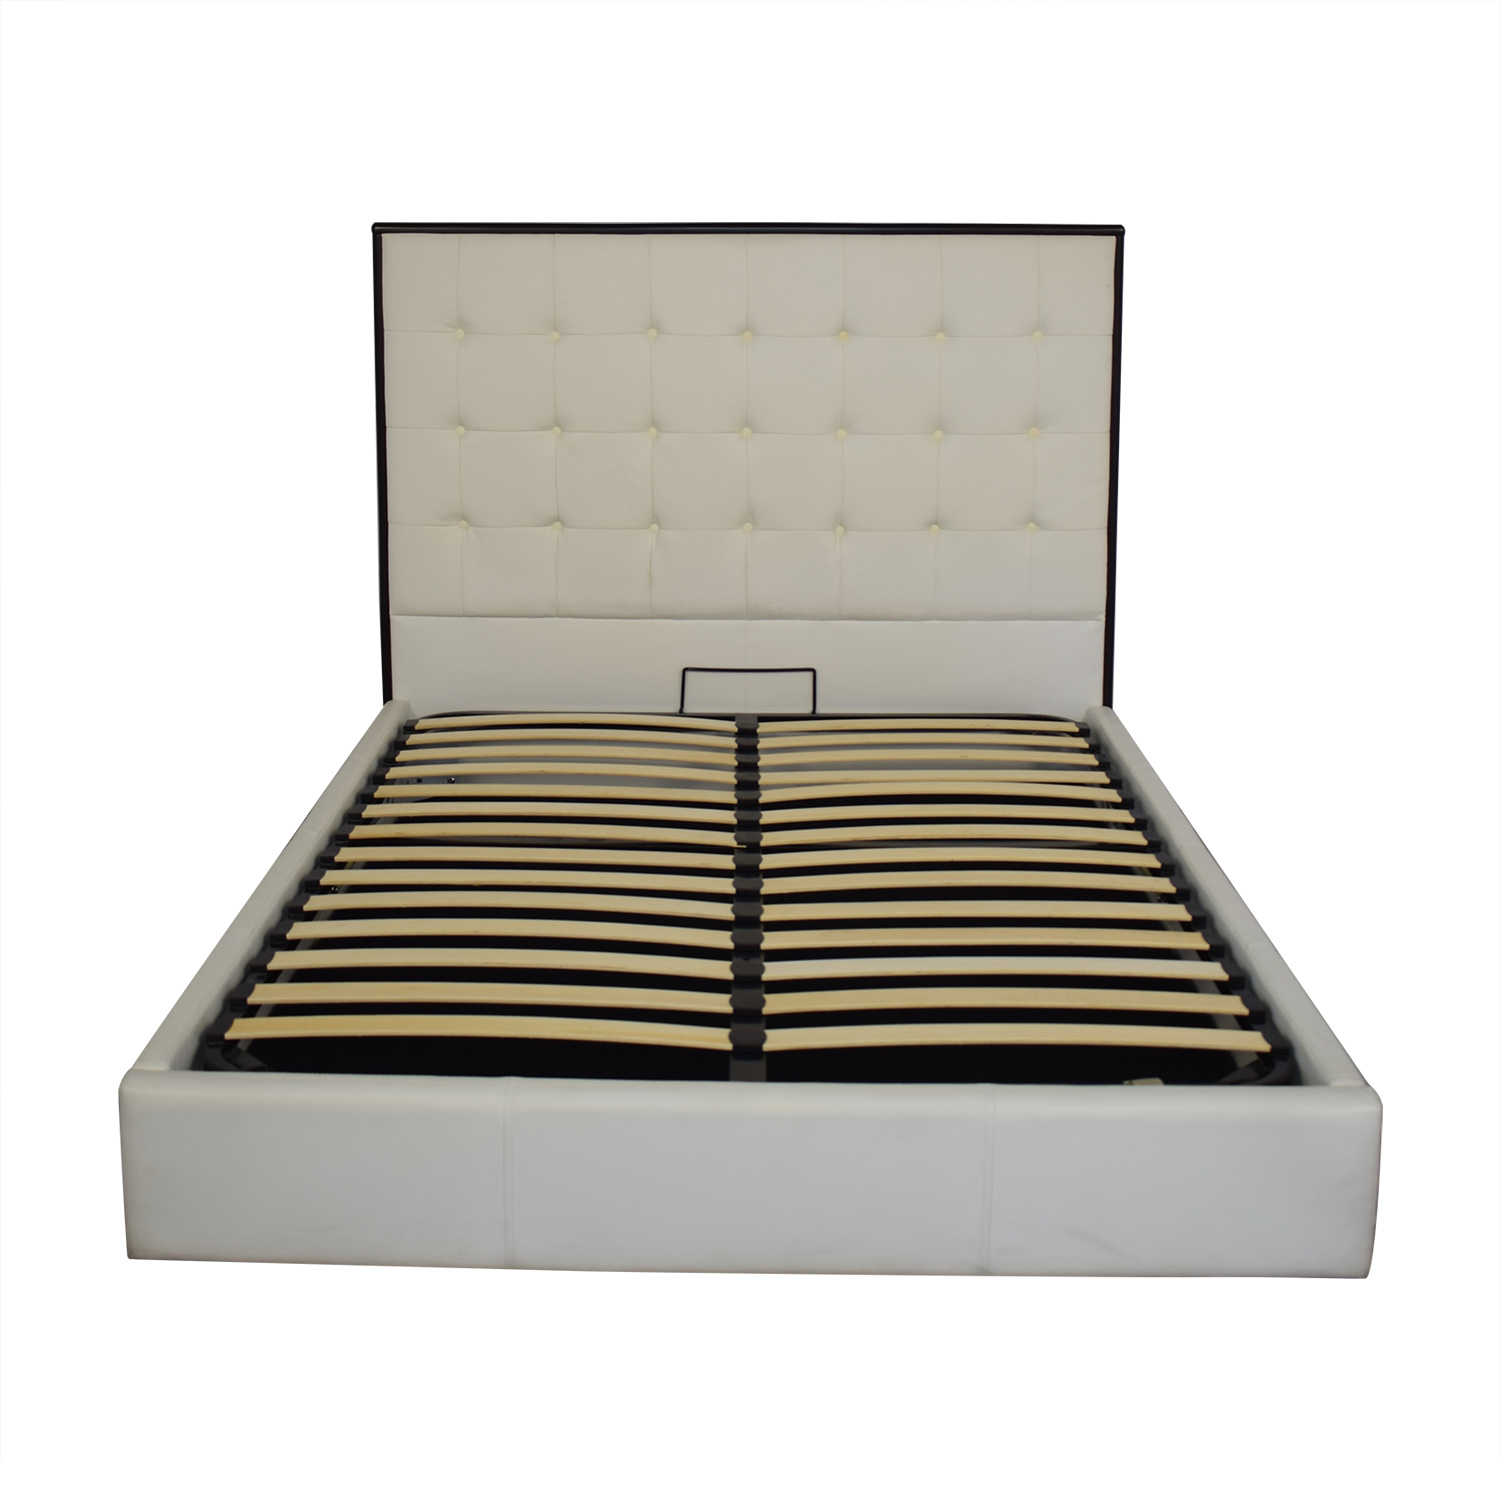 Tufted Queen Bed with Lift Storage used